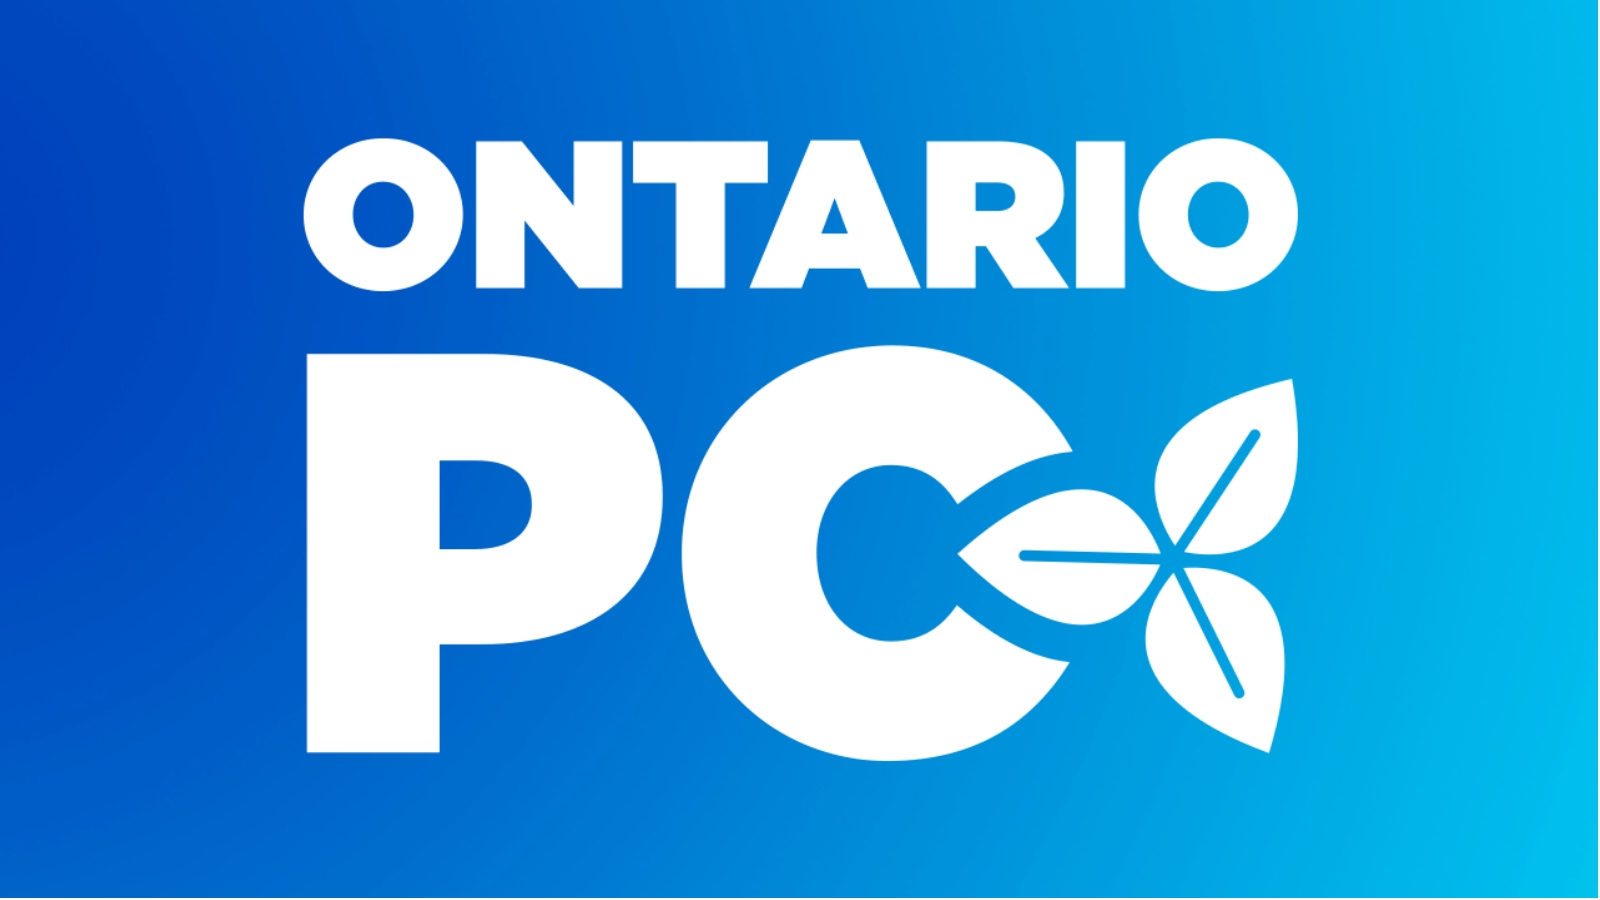 Statement from Ontario PC Leader Doug Ford on Easter